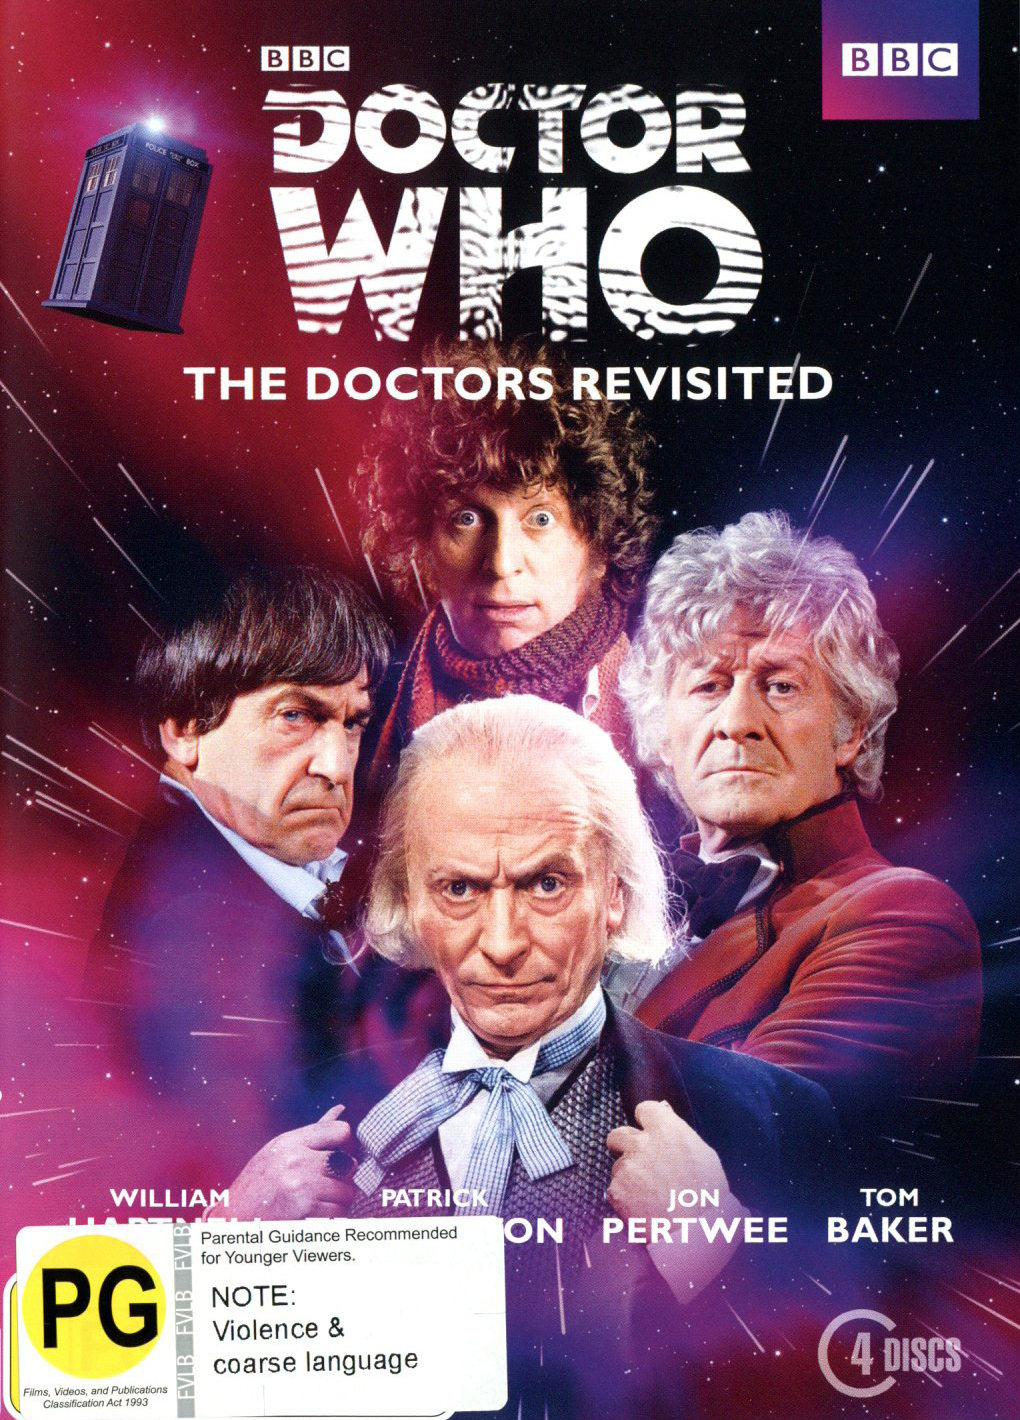 Doctor Who: The Doctors Revisited (1st to 4th) DVD image